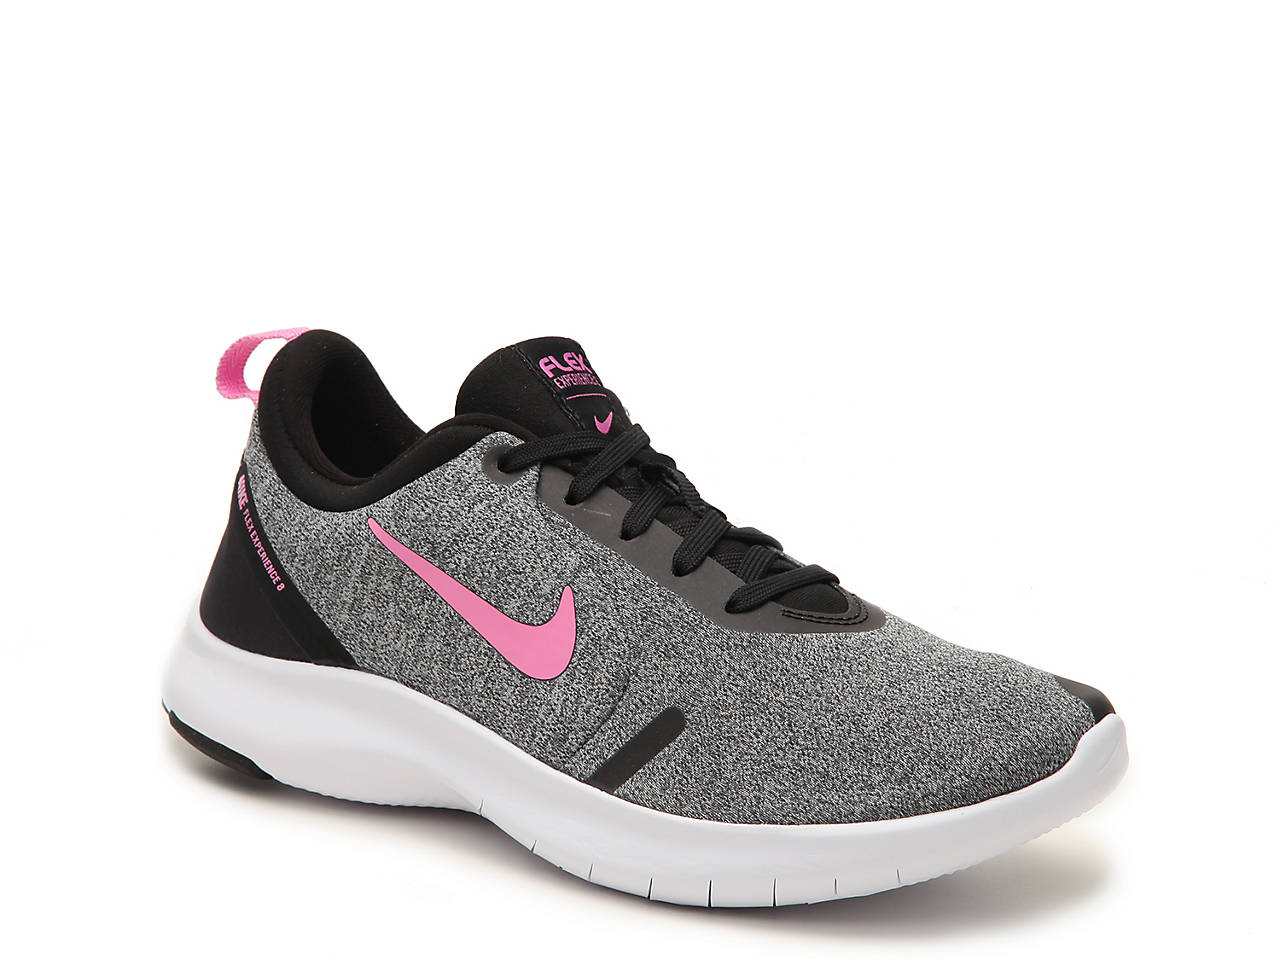 brand new 78318 69984 Nike. Flex Experience RN 8 Lightweight Running Shoe - Women s